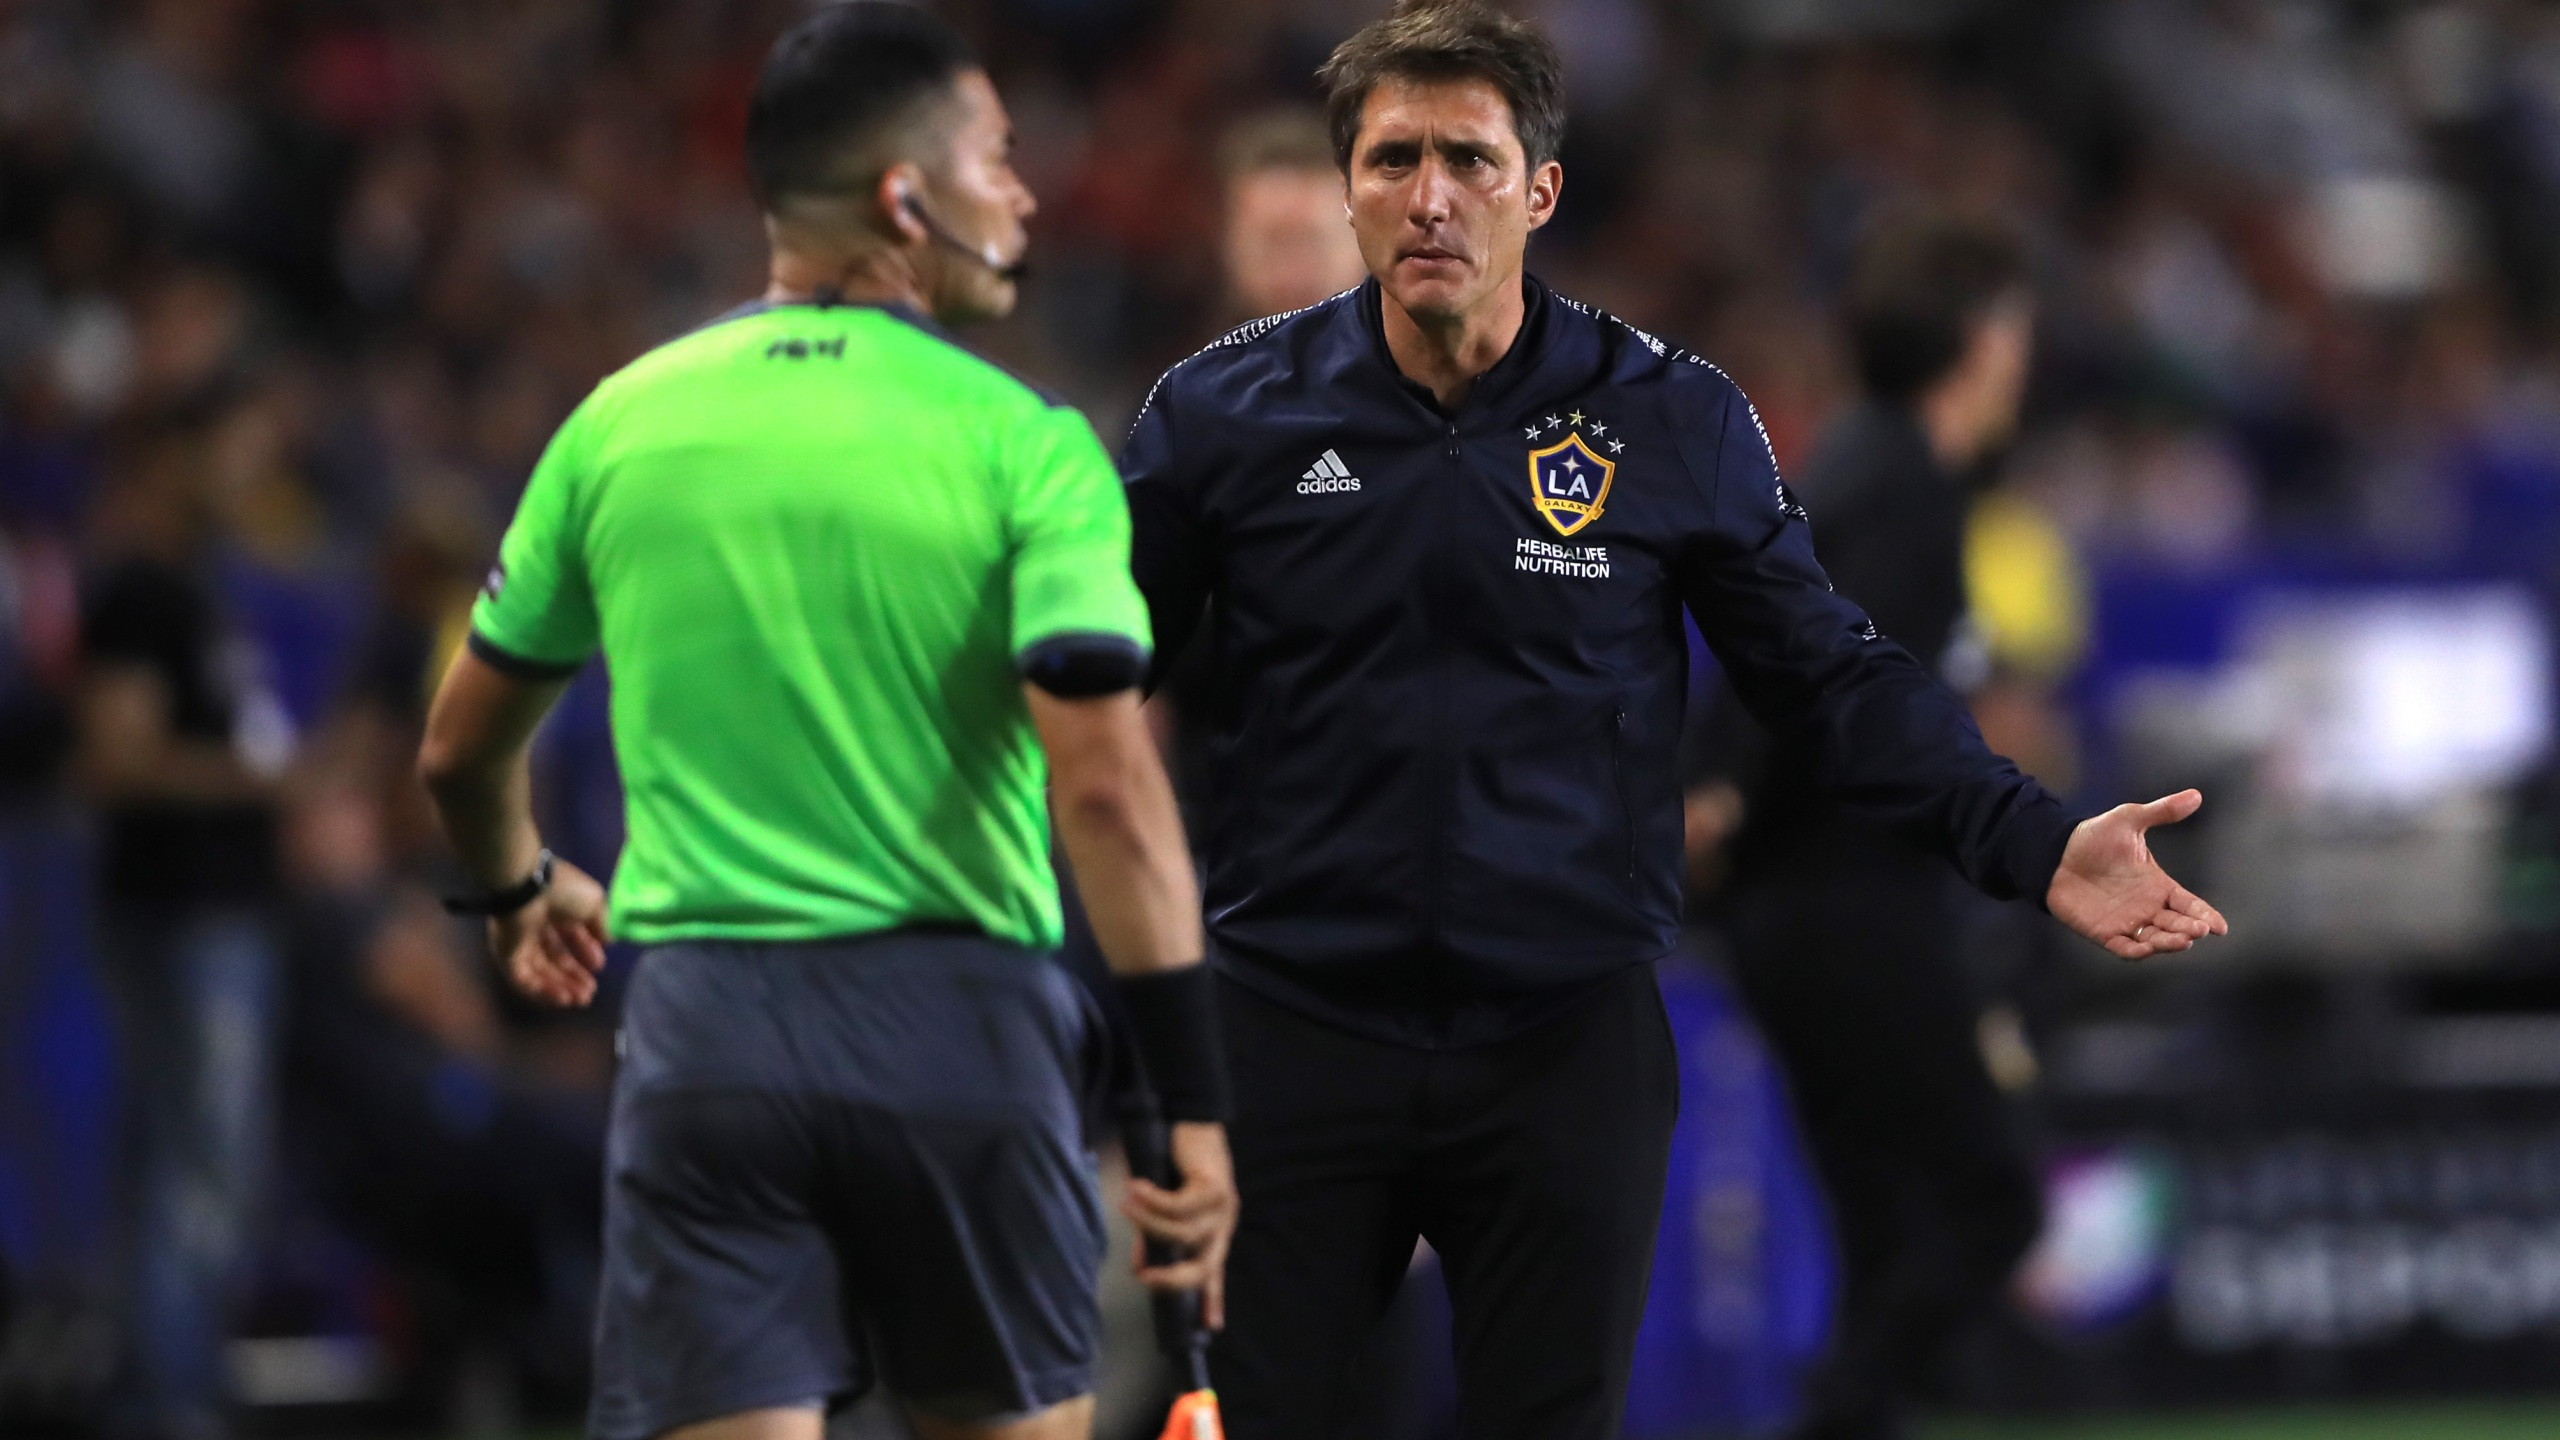 Manager Guillermo Barros Schelotto of the Los Angeles Galaxy disputes a call during the quarterfinal match of the 2019 Leagues Cup against Tijuana at Dignity Health Sports Park on July 23, 2019, in Carson, California. (Sean M. Haffey/Getty Images)